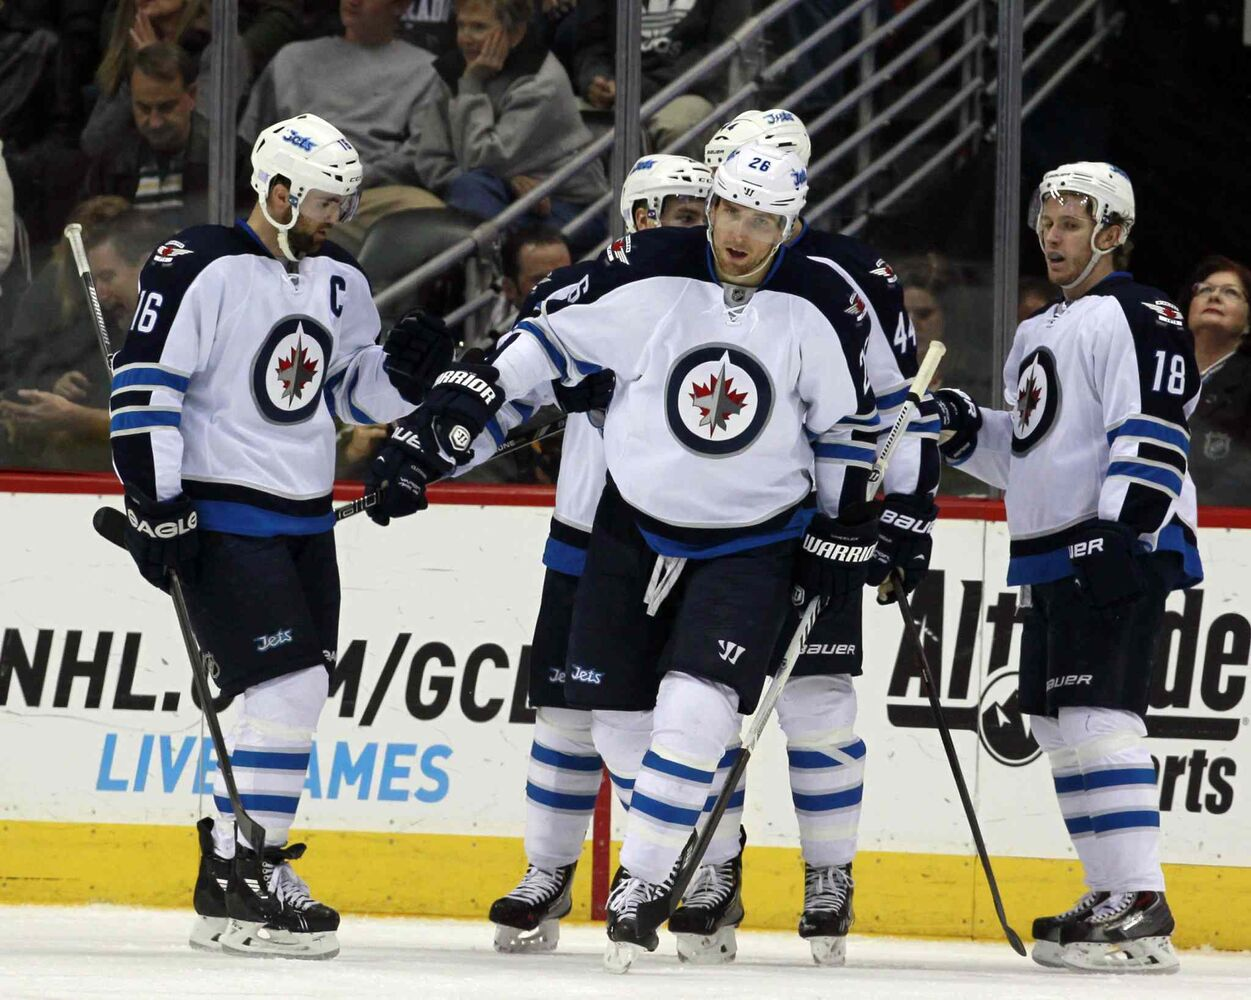 Blake Wheeler (centre) celebrates his power play goal with Andrew Ladd (left) and centre Bryan Little (right) in eth second period. (David Zalubowski / The Associated Press)